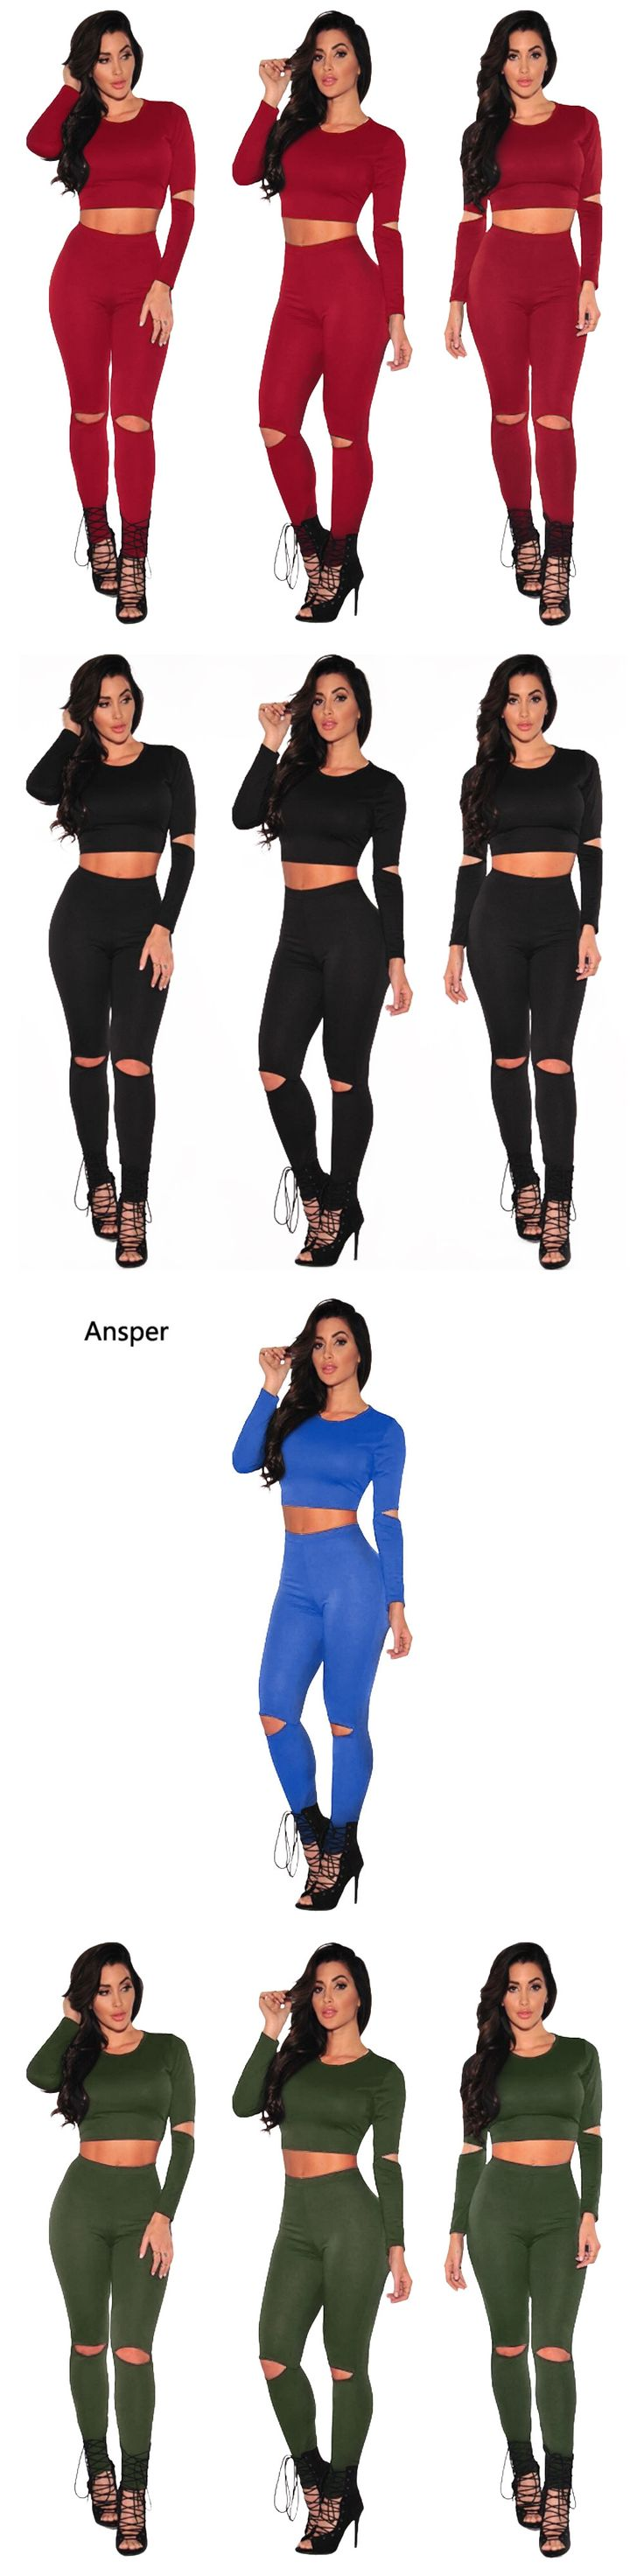 2017 Sexy Style 2 Piece Set Women Black Pants and Crop Top Suit Fashion Hollow Out Letter Print Sportswear sporting Tracksuit